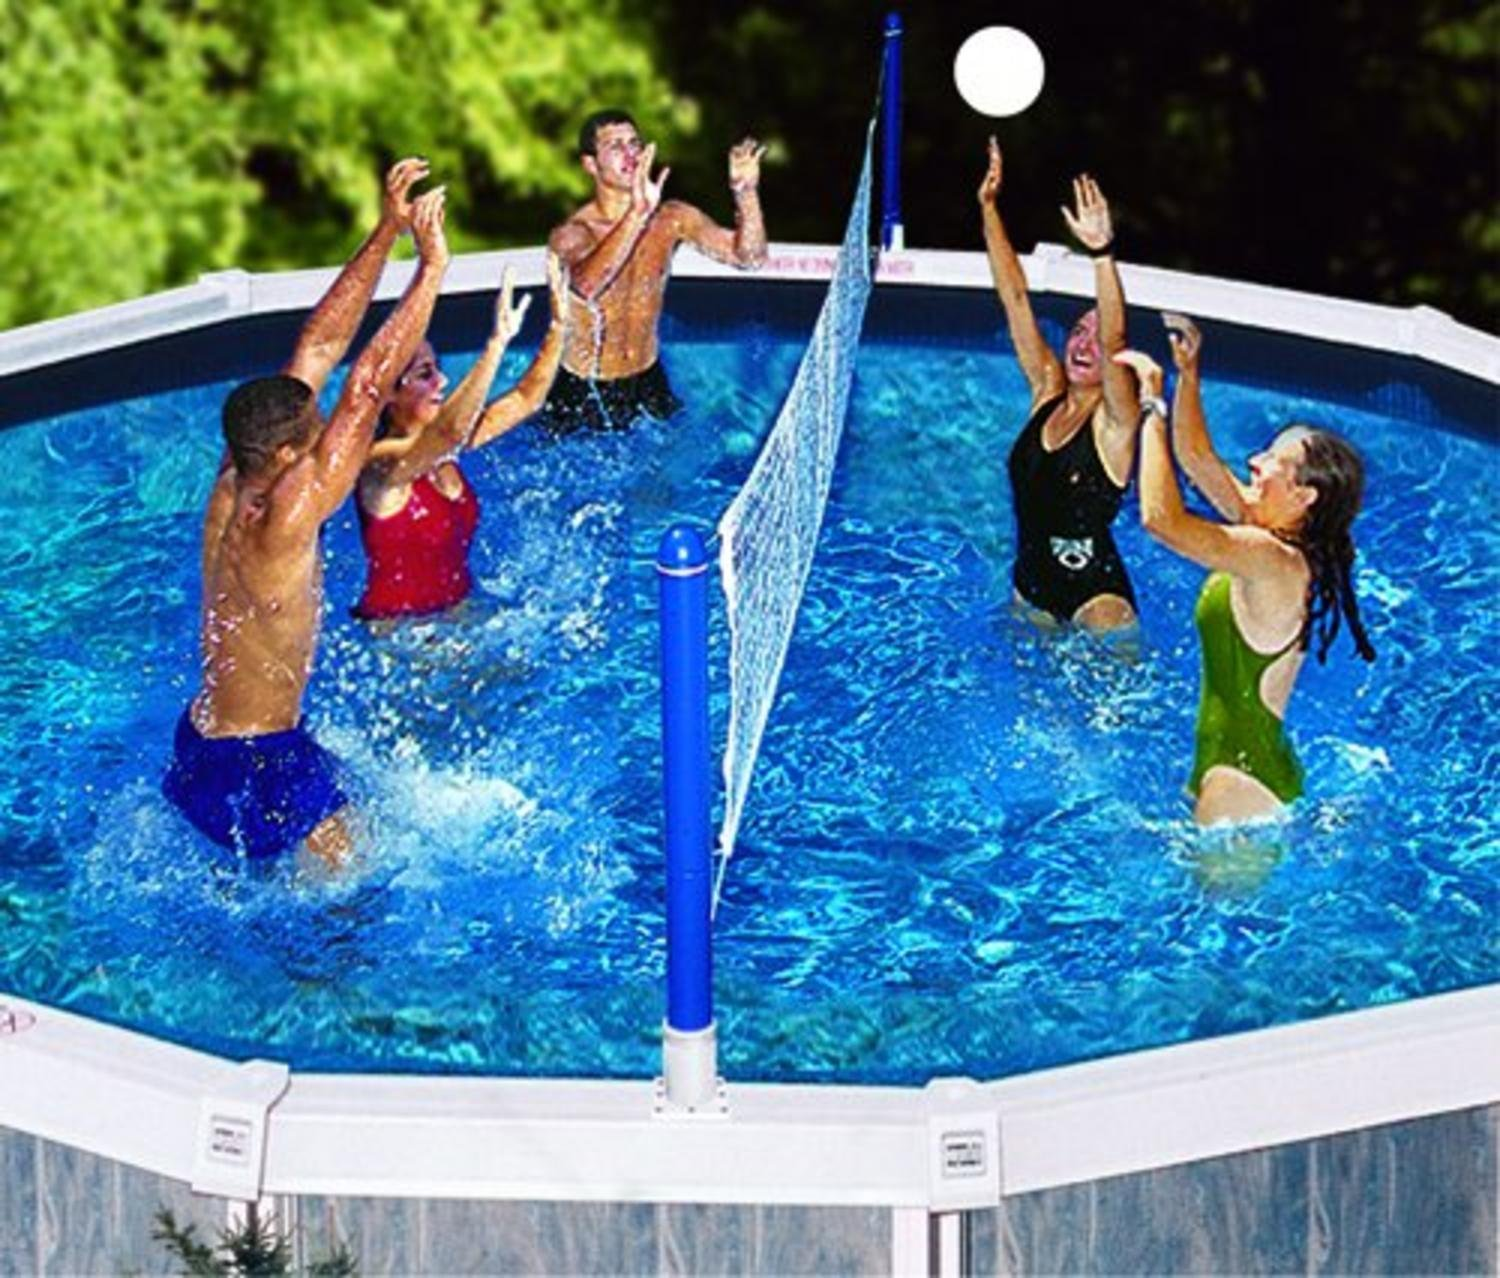 Water Sports Cross Volleyball Swimming Pool Game - Screw-in Net Supports Swim Central